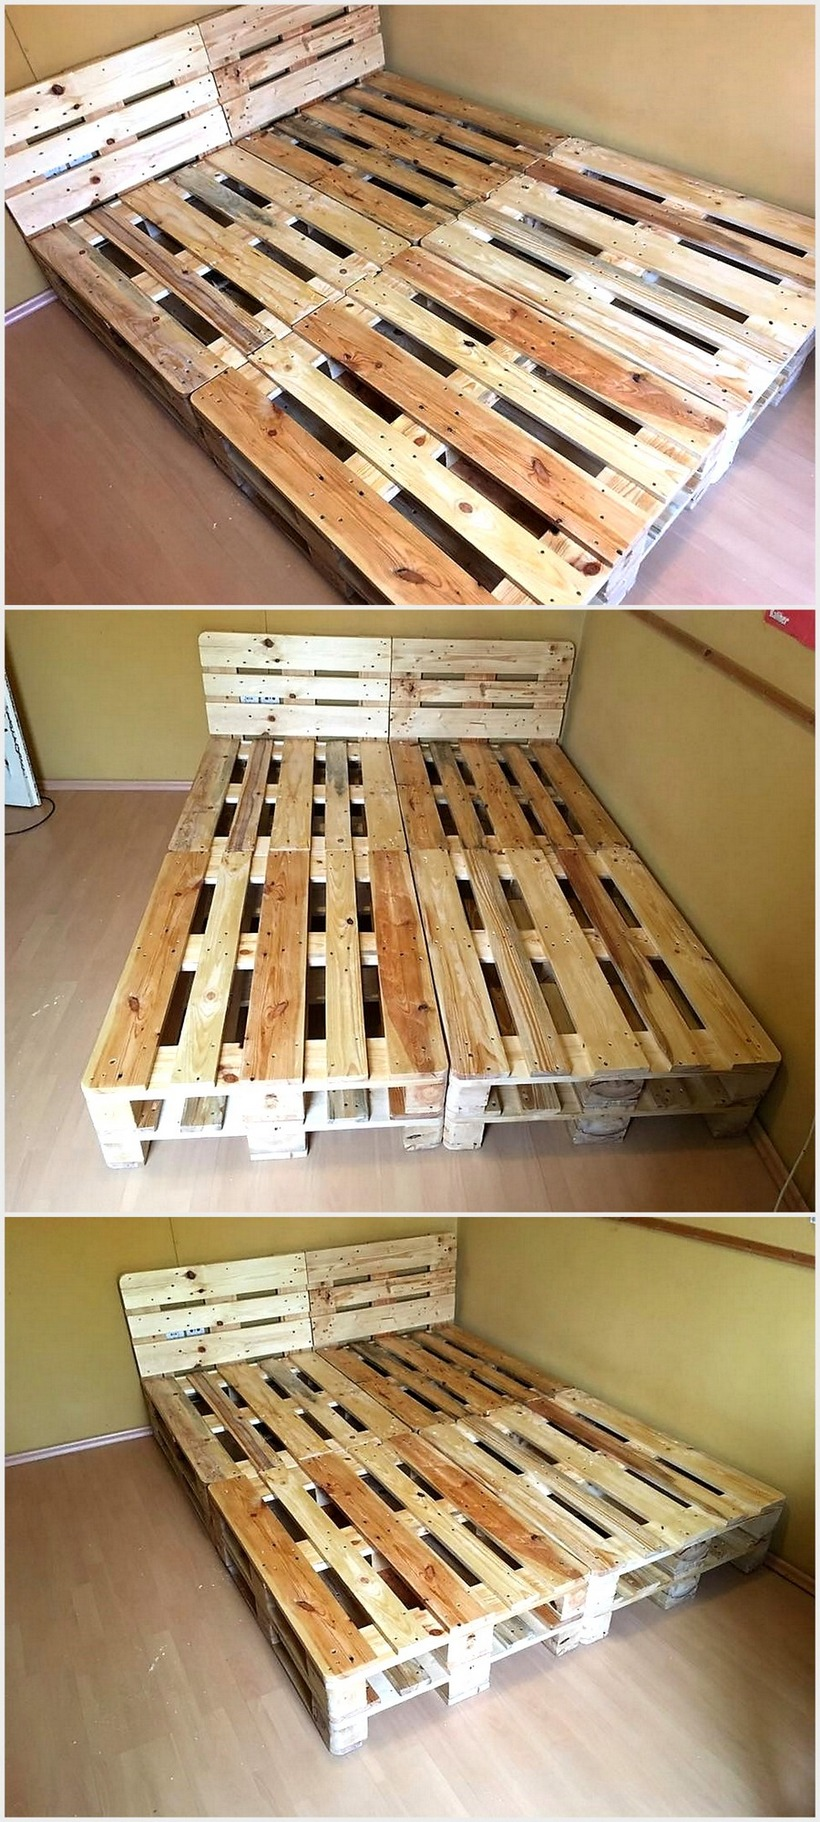 Cheap Home Furnishing With Wooden Pallets   Wood Pallet ... on Pallet Bed Room  id=16943